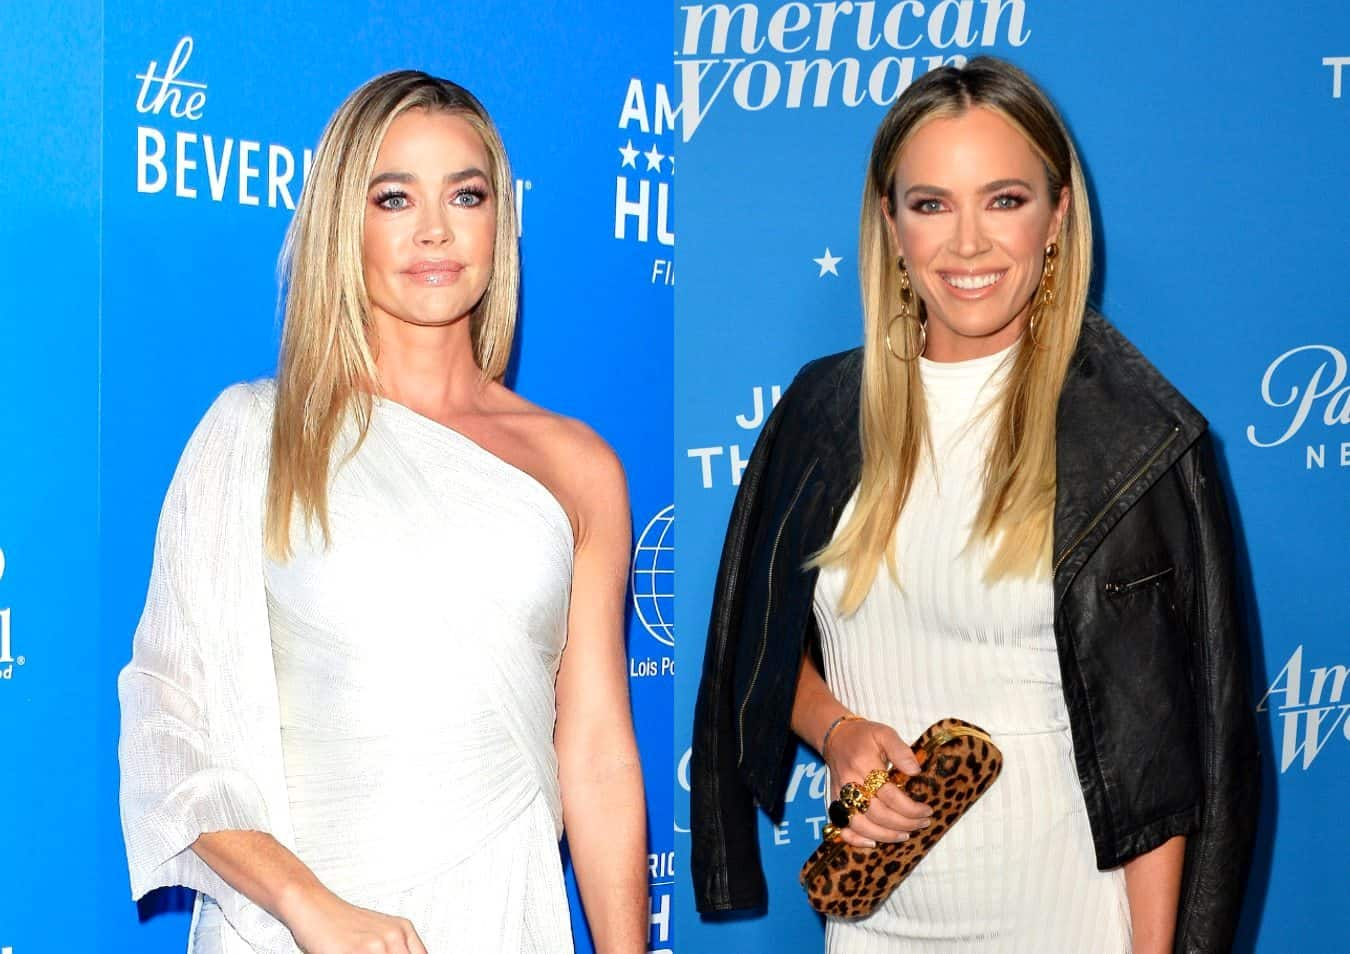 RHOBH's Denise Richards Fires Back at Teddi Mellencamp's Claim That She Leaked Stories About Alleged Fling With Brandi, See Her Fiery Tweet as She Addresses the Rumors Affecting Her Kids